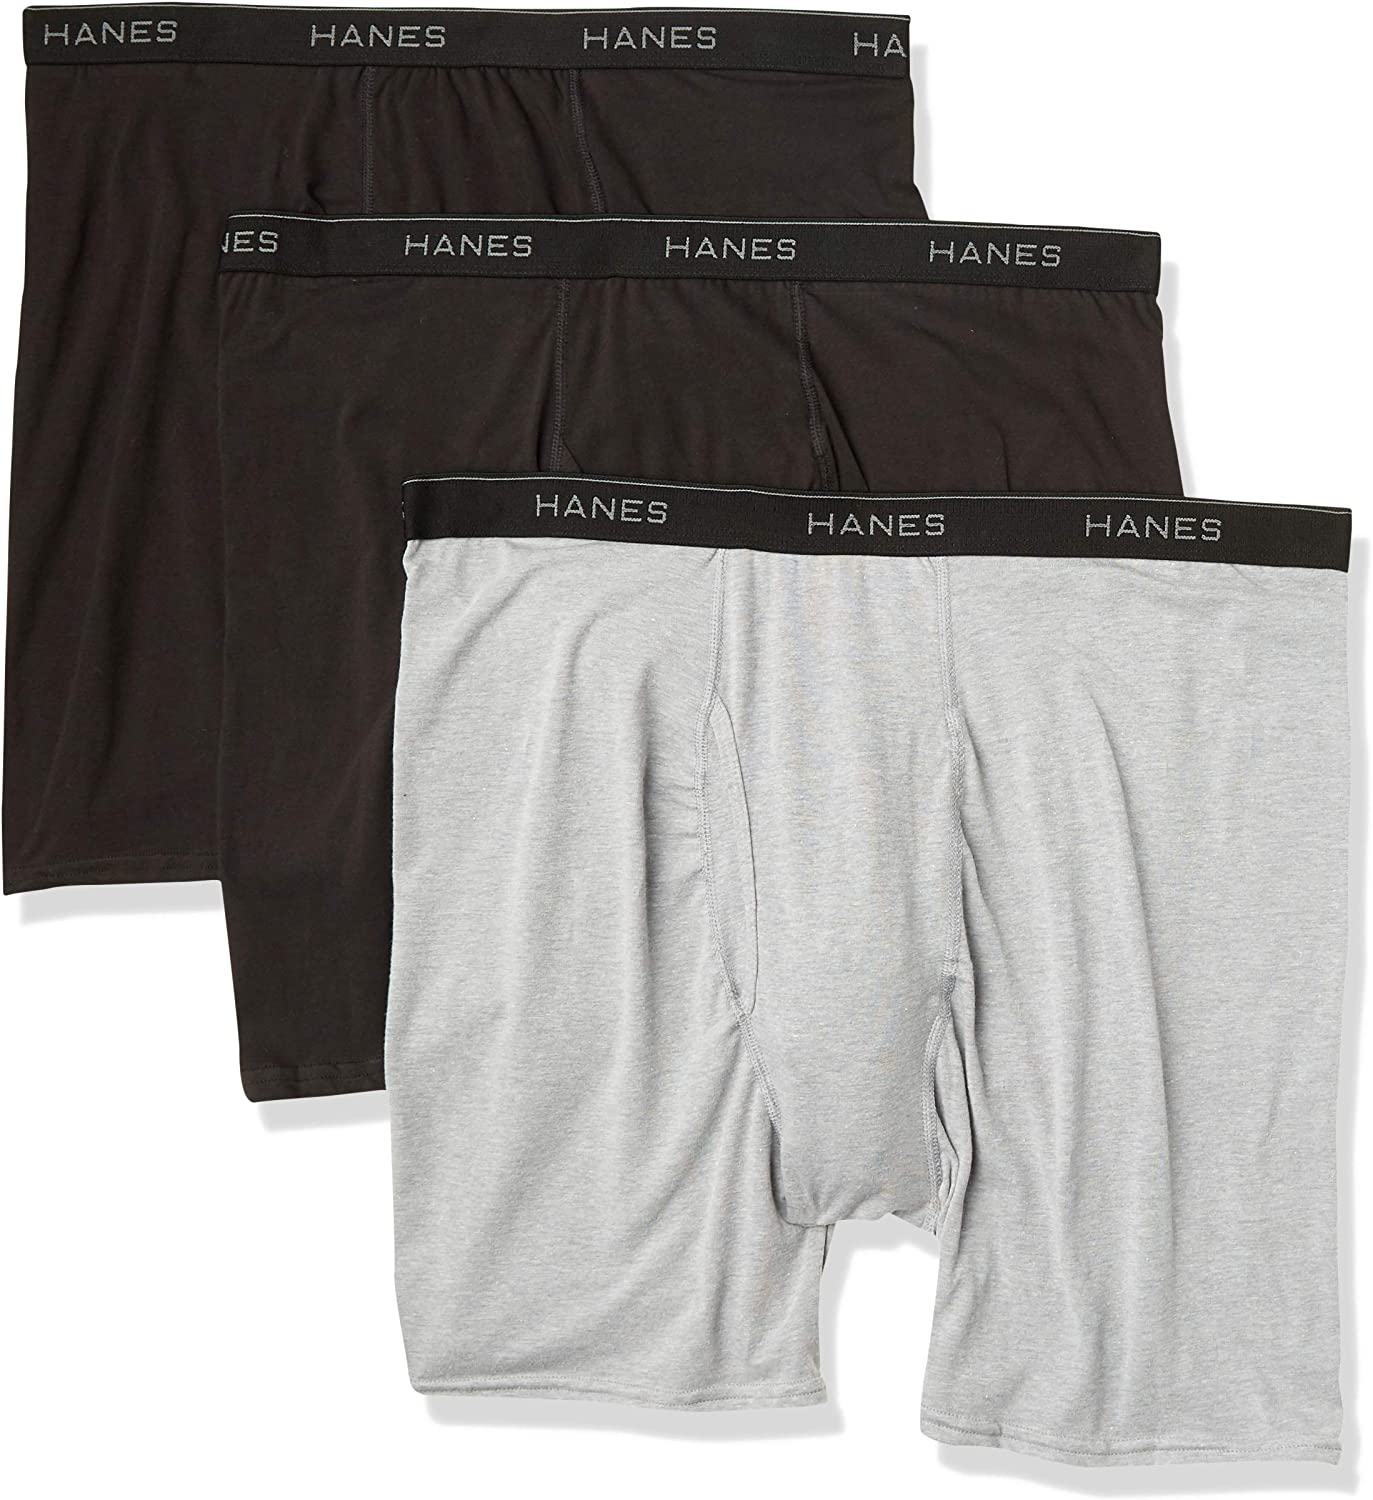 Hanes Men's Max 42% OFF Stretch Boxer 3 OFFicial Briefs Pack